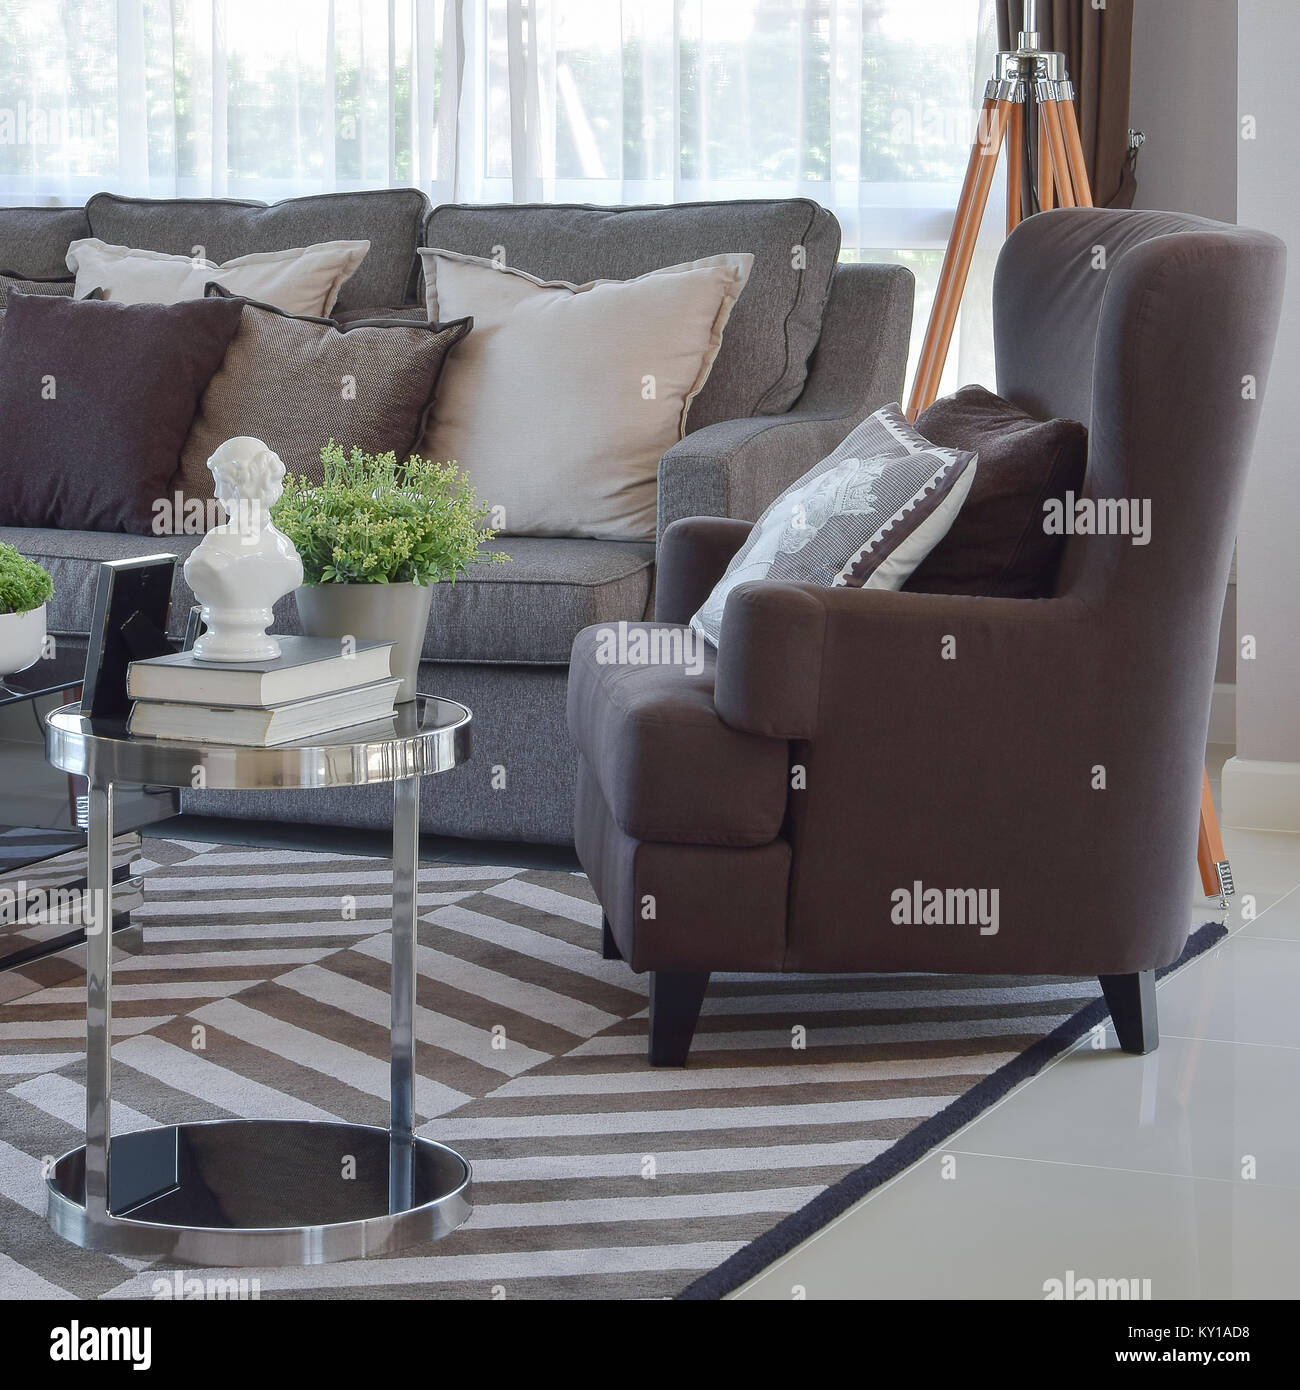 Enjoyable Modern Living Room Design With Tweed Brown Sofa And Armchair Machost Co Dining Chair Design Ideas Machostcouk